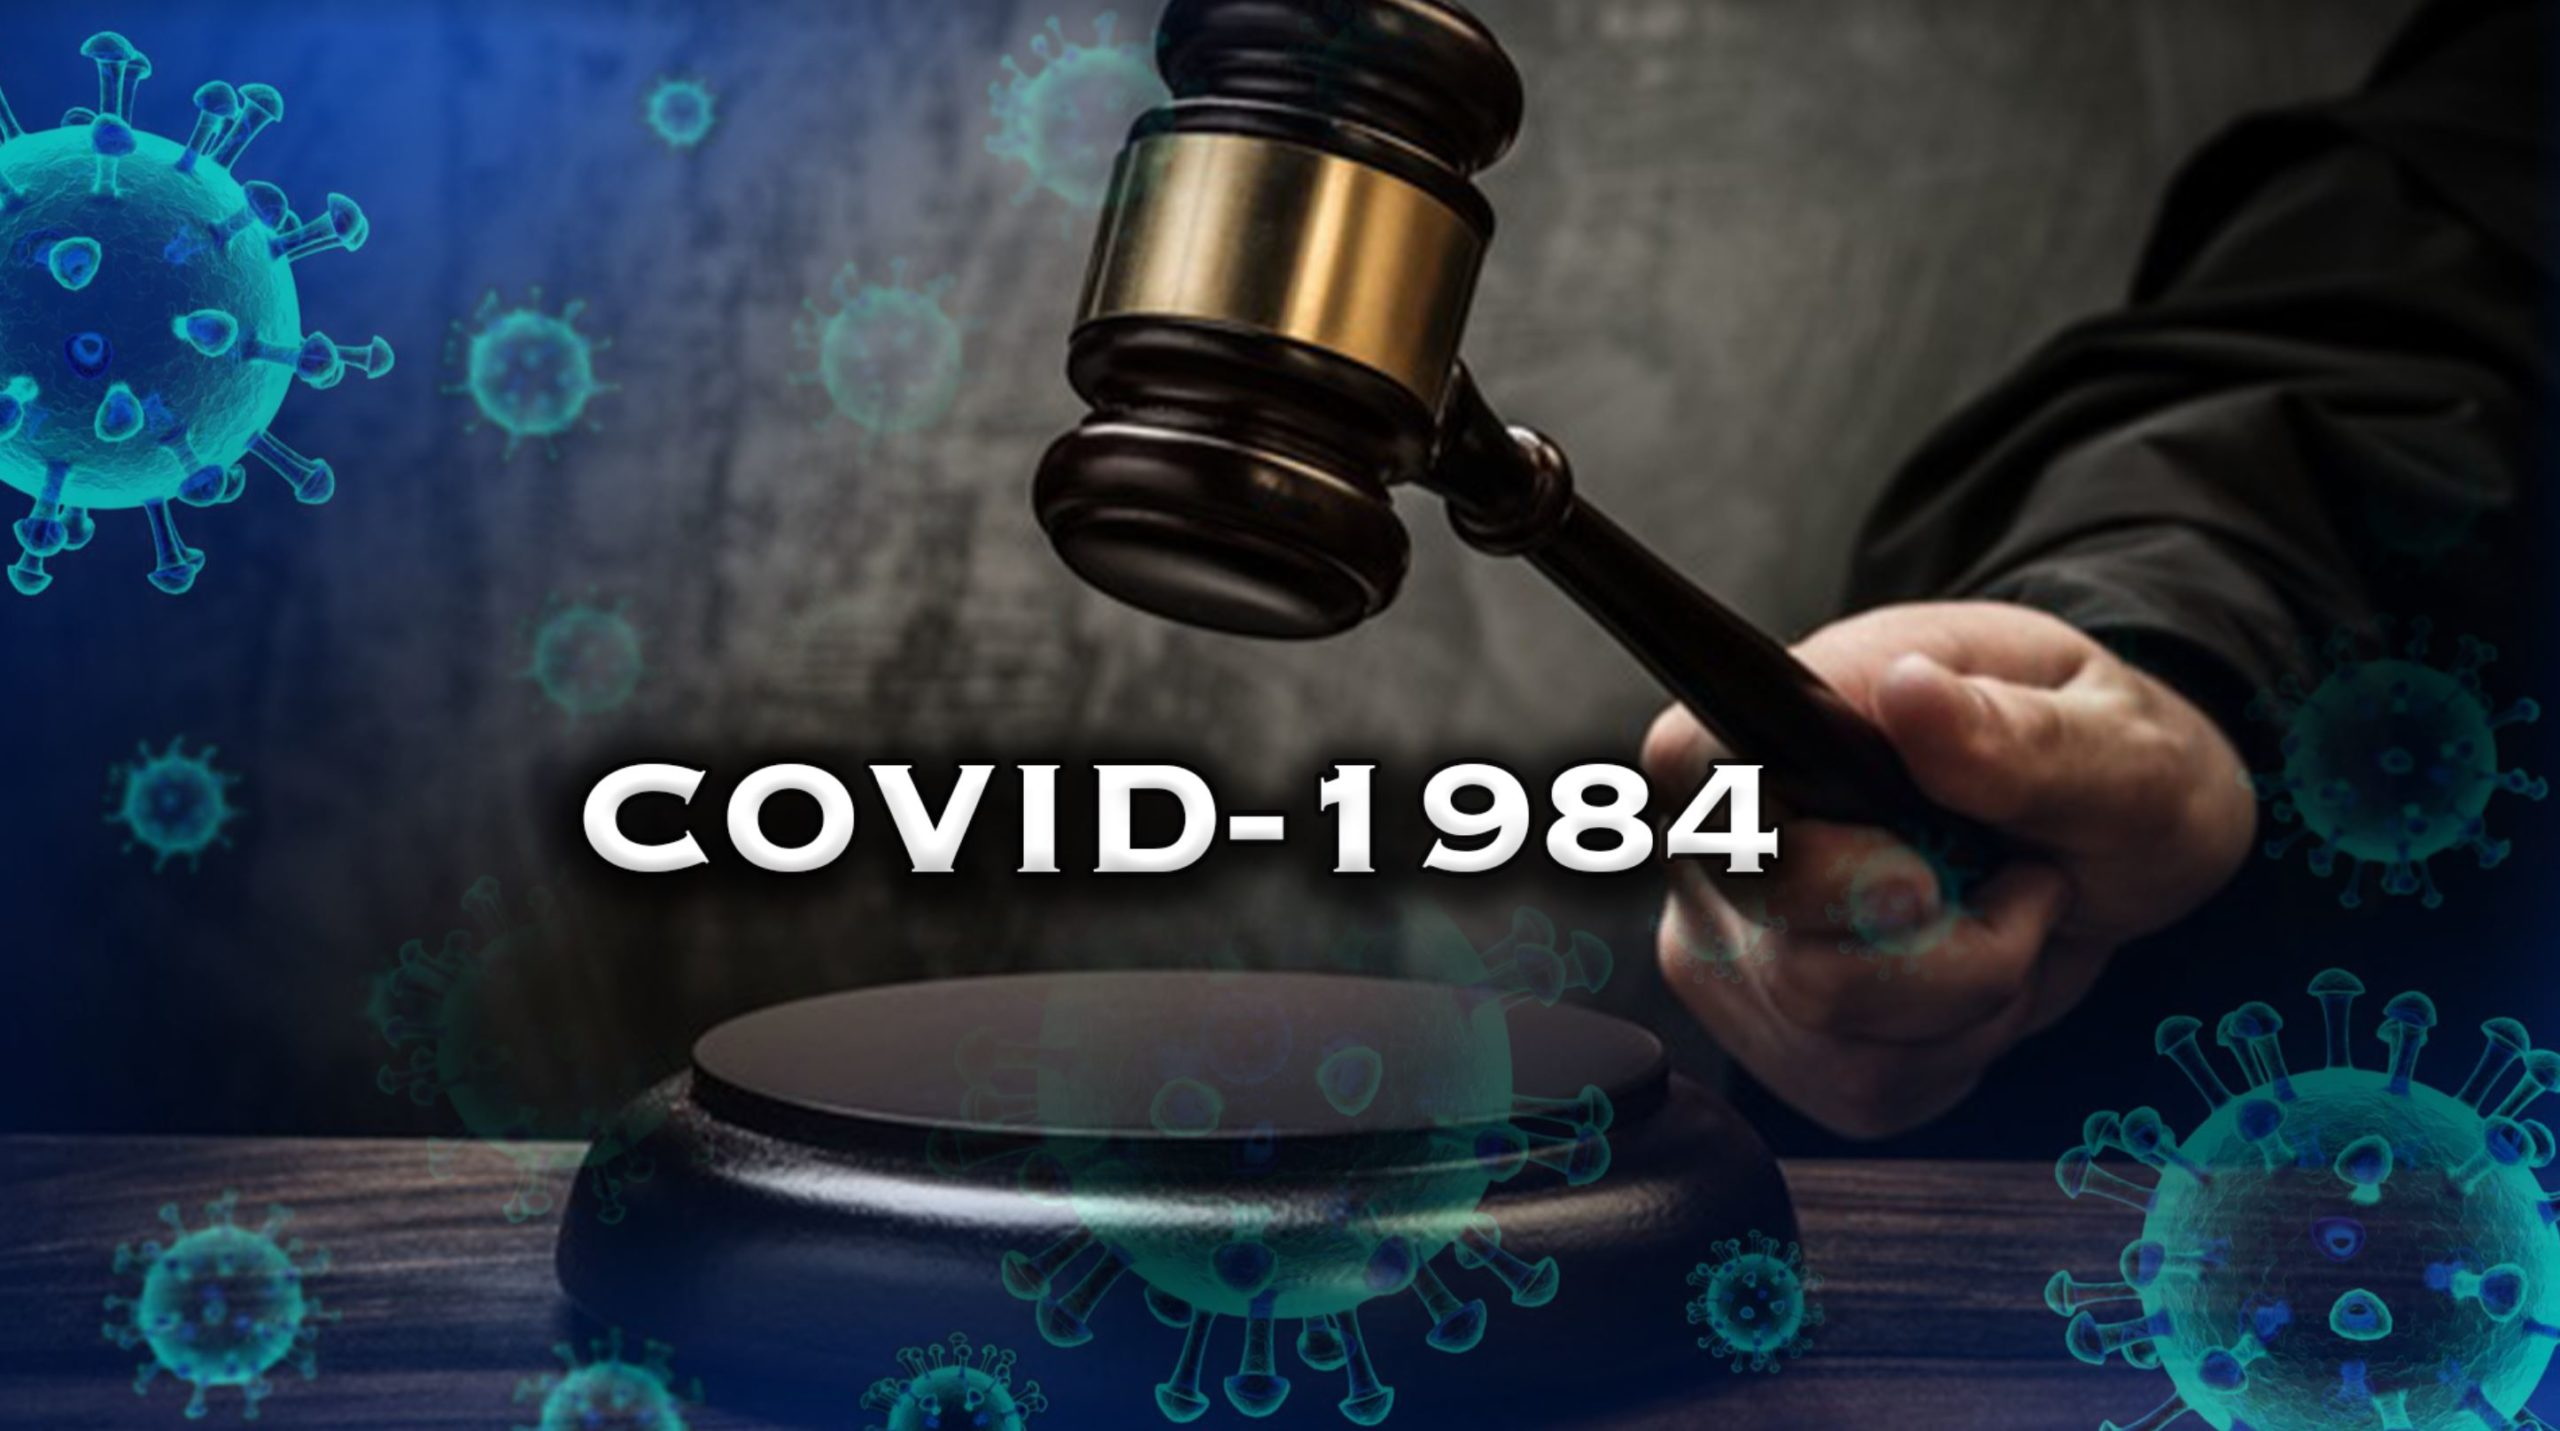 The Lawsuit That Could End Covid-1984 with Dr. Pam Popper